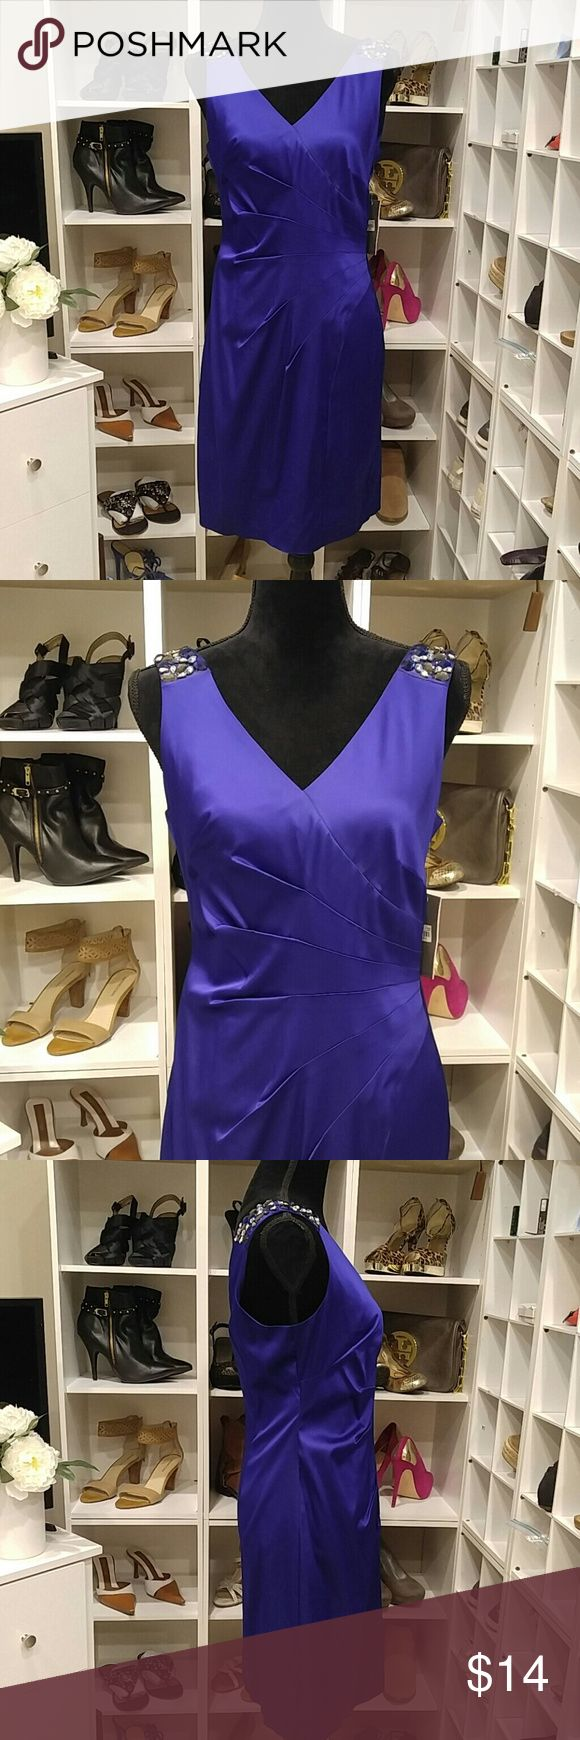 """NWT DONNA RICCO COBALT BLUE DRESS 8 Gorgeous Cobalt Blue Donna Ricco Dress. Length-37"""" Pit to pit-18"""" Feels like silk 76% acetate, 22% nylon, 2% spandex Lining 100% polyester. Missing one of the jewels on the right shoulder and 2 on the left. Very hard to notice that they are gone luckily because of the color.  Other than that excellent condition. Zips up back. Fully lined. Donna Ricco Dresses Midi"""